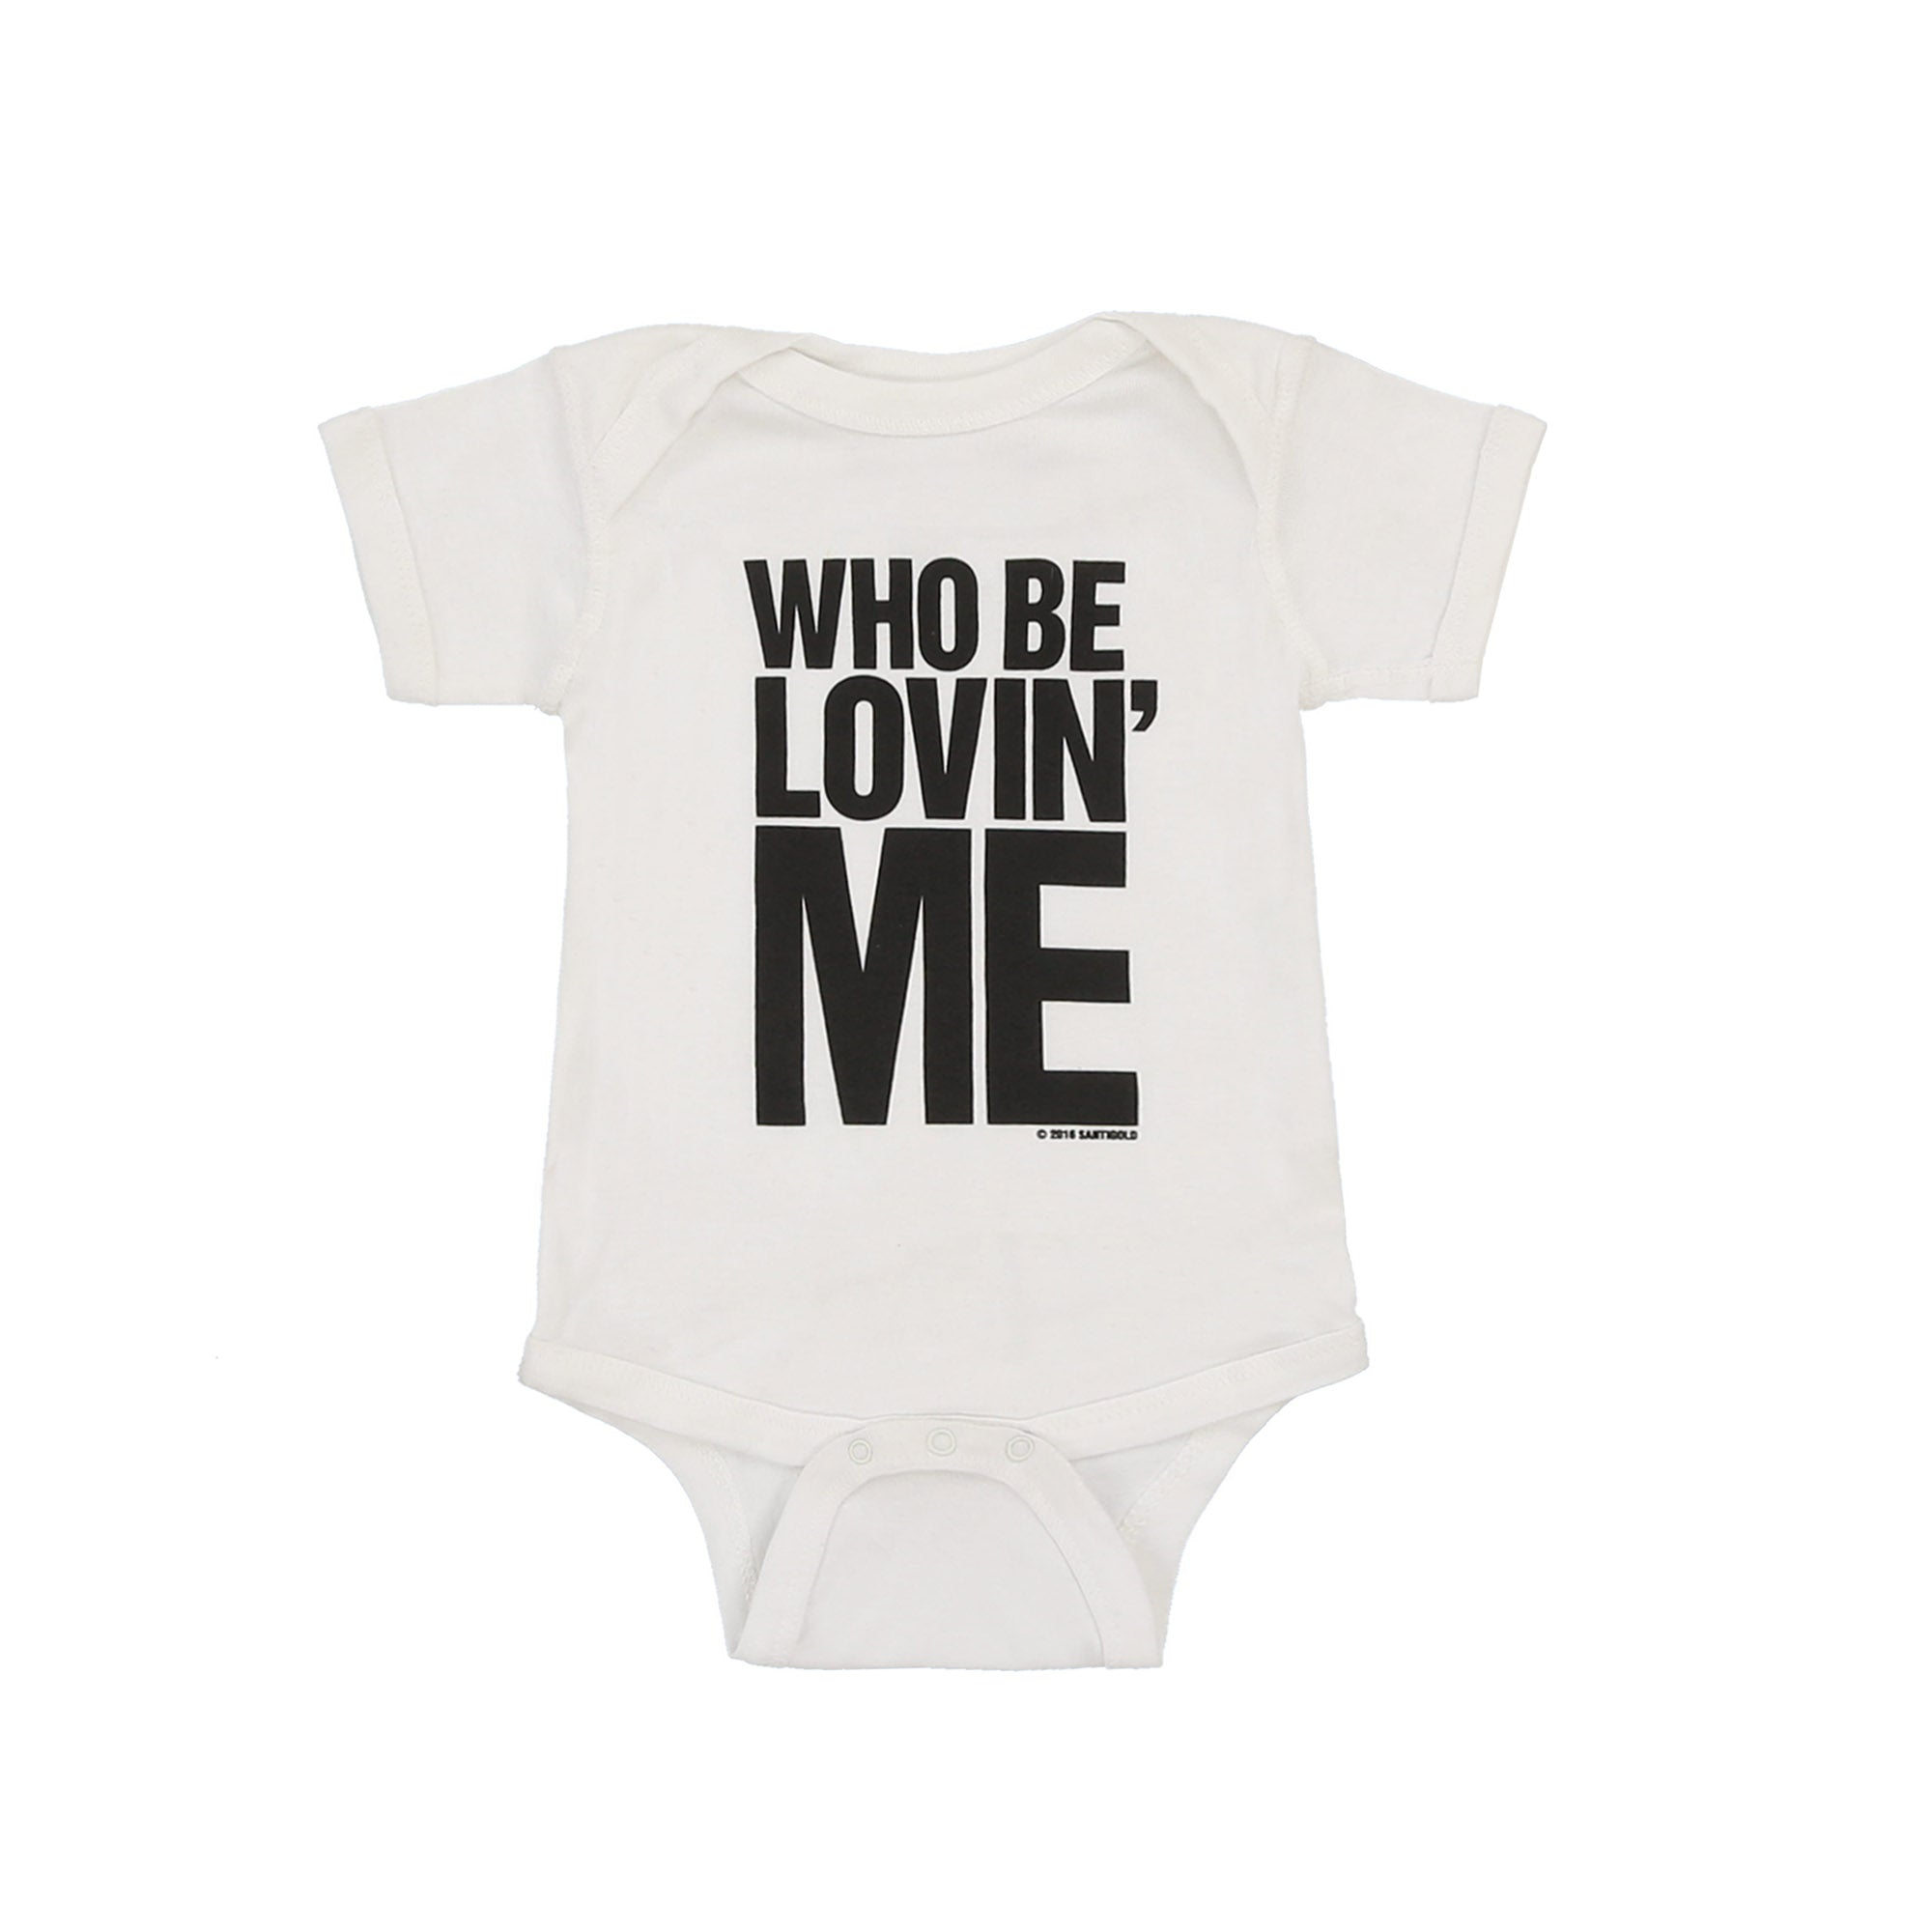 Who Be Lovin Me Baby Onesie